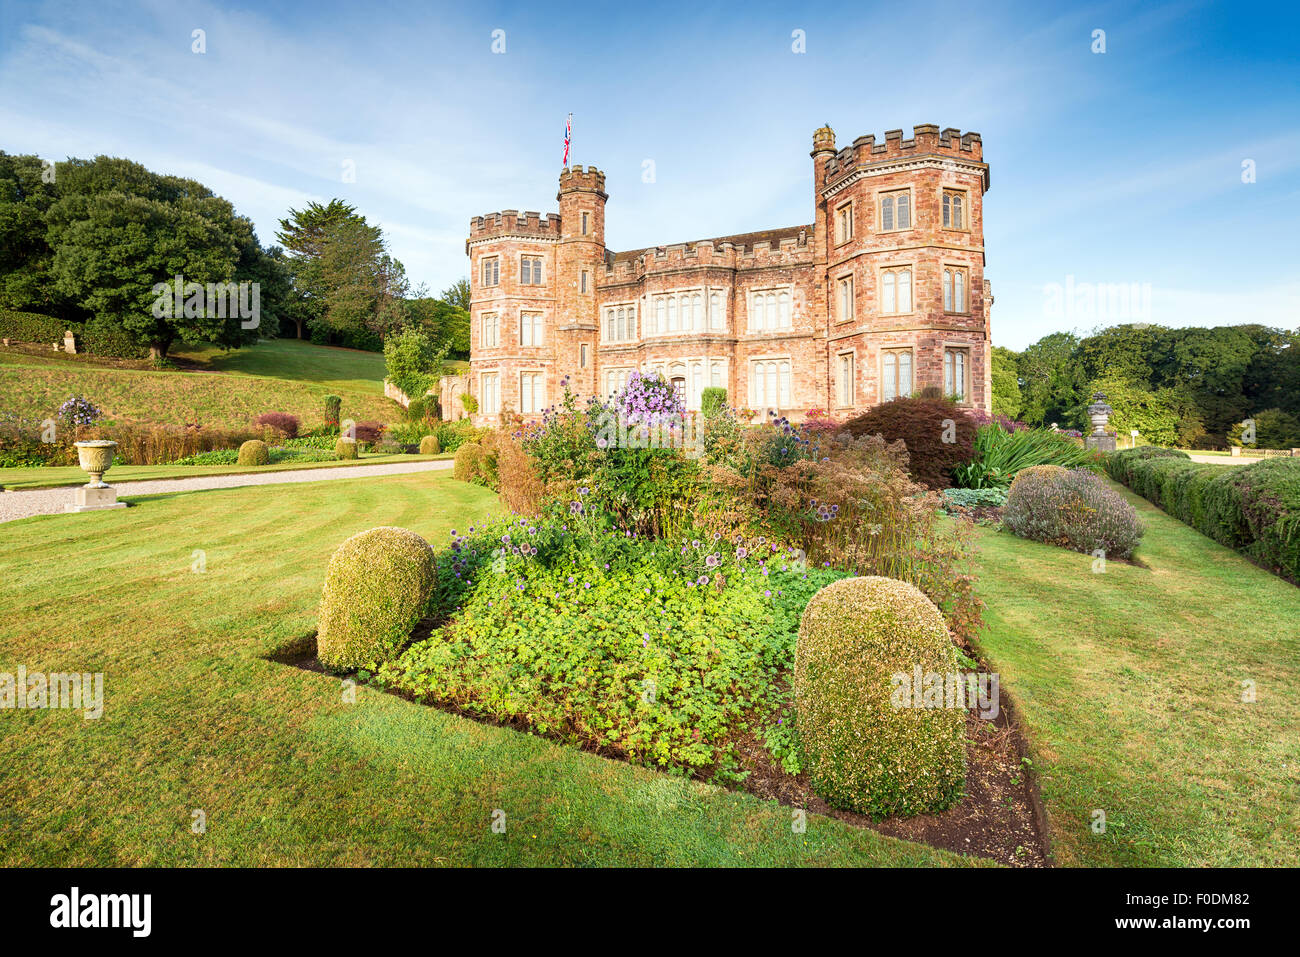 An English stately home with formal gardens at Mount Edgcumbe in Cornwall - Stock Image